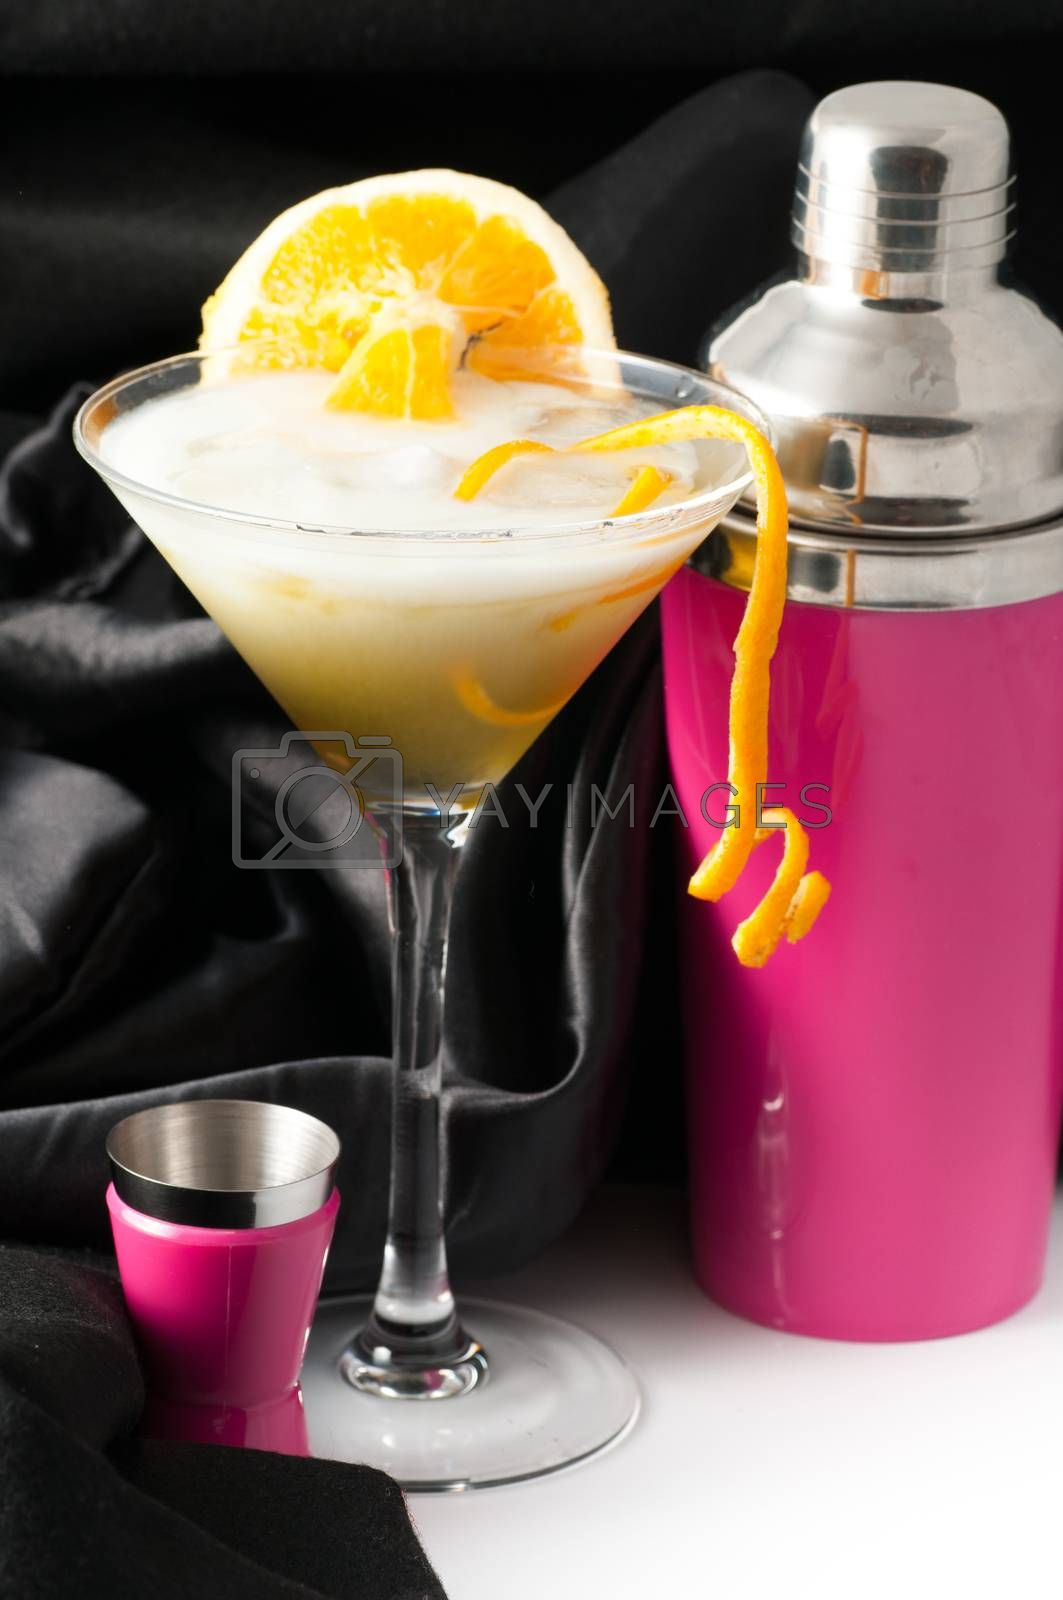 Royalty free image of orange with pink cocktail shaker by antonio.li